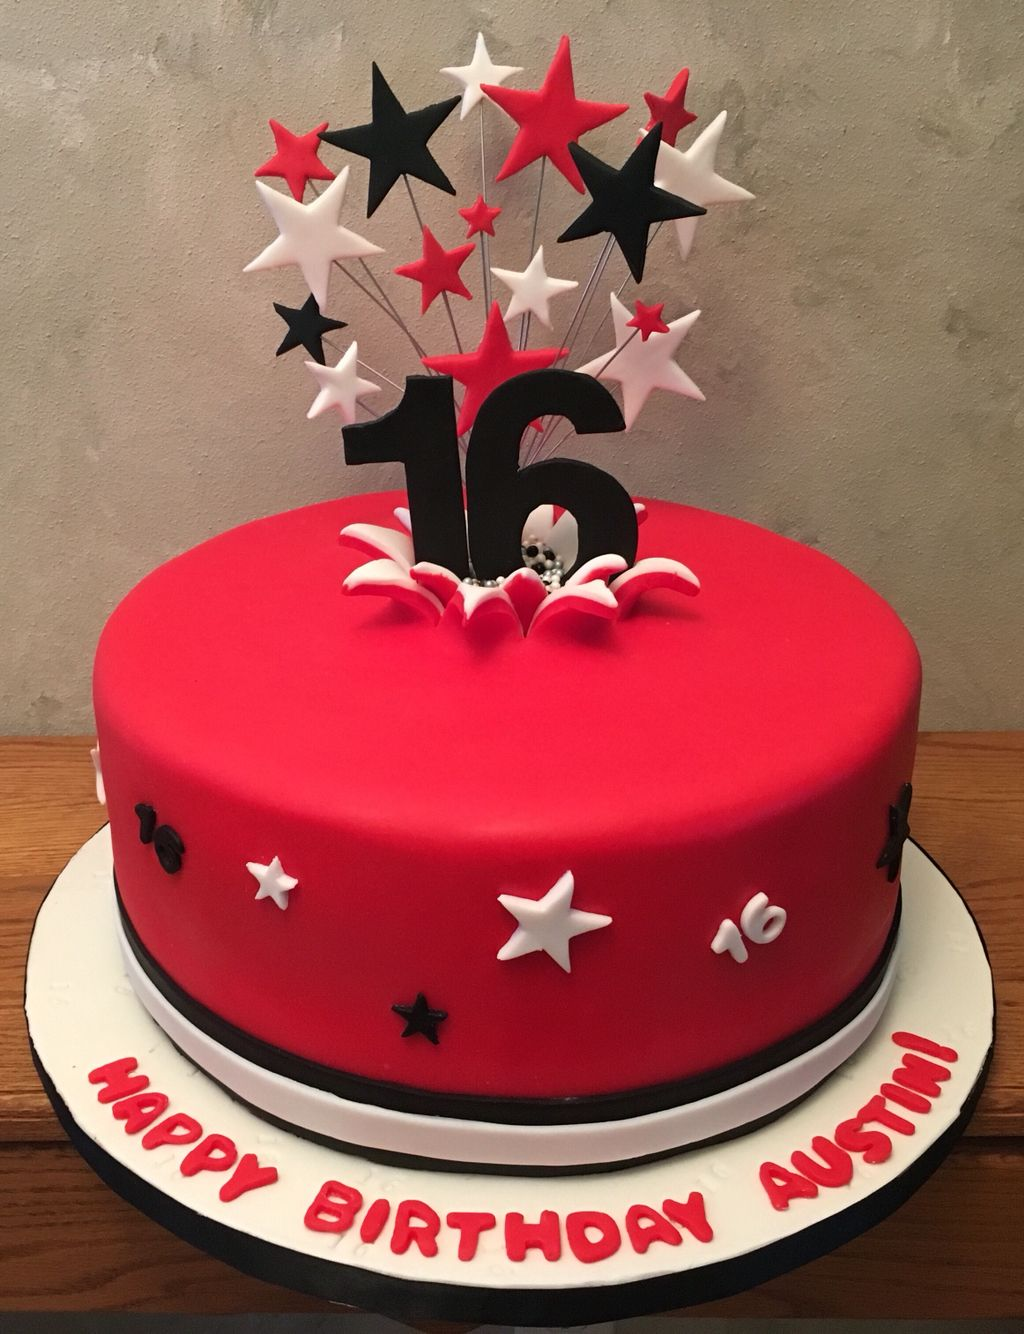 Cool Red Black And White Birthday Cake Numbers Exploding From Cake Funny Birthday Cards Online Inifodamsfinfo